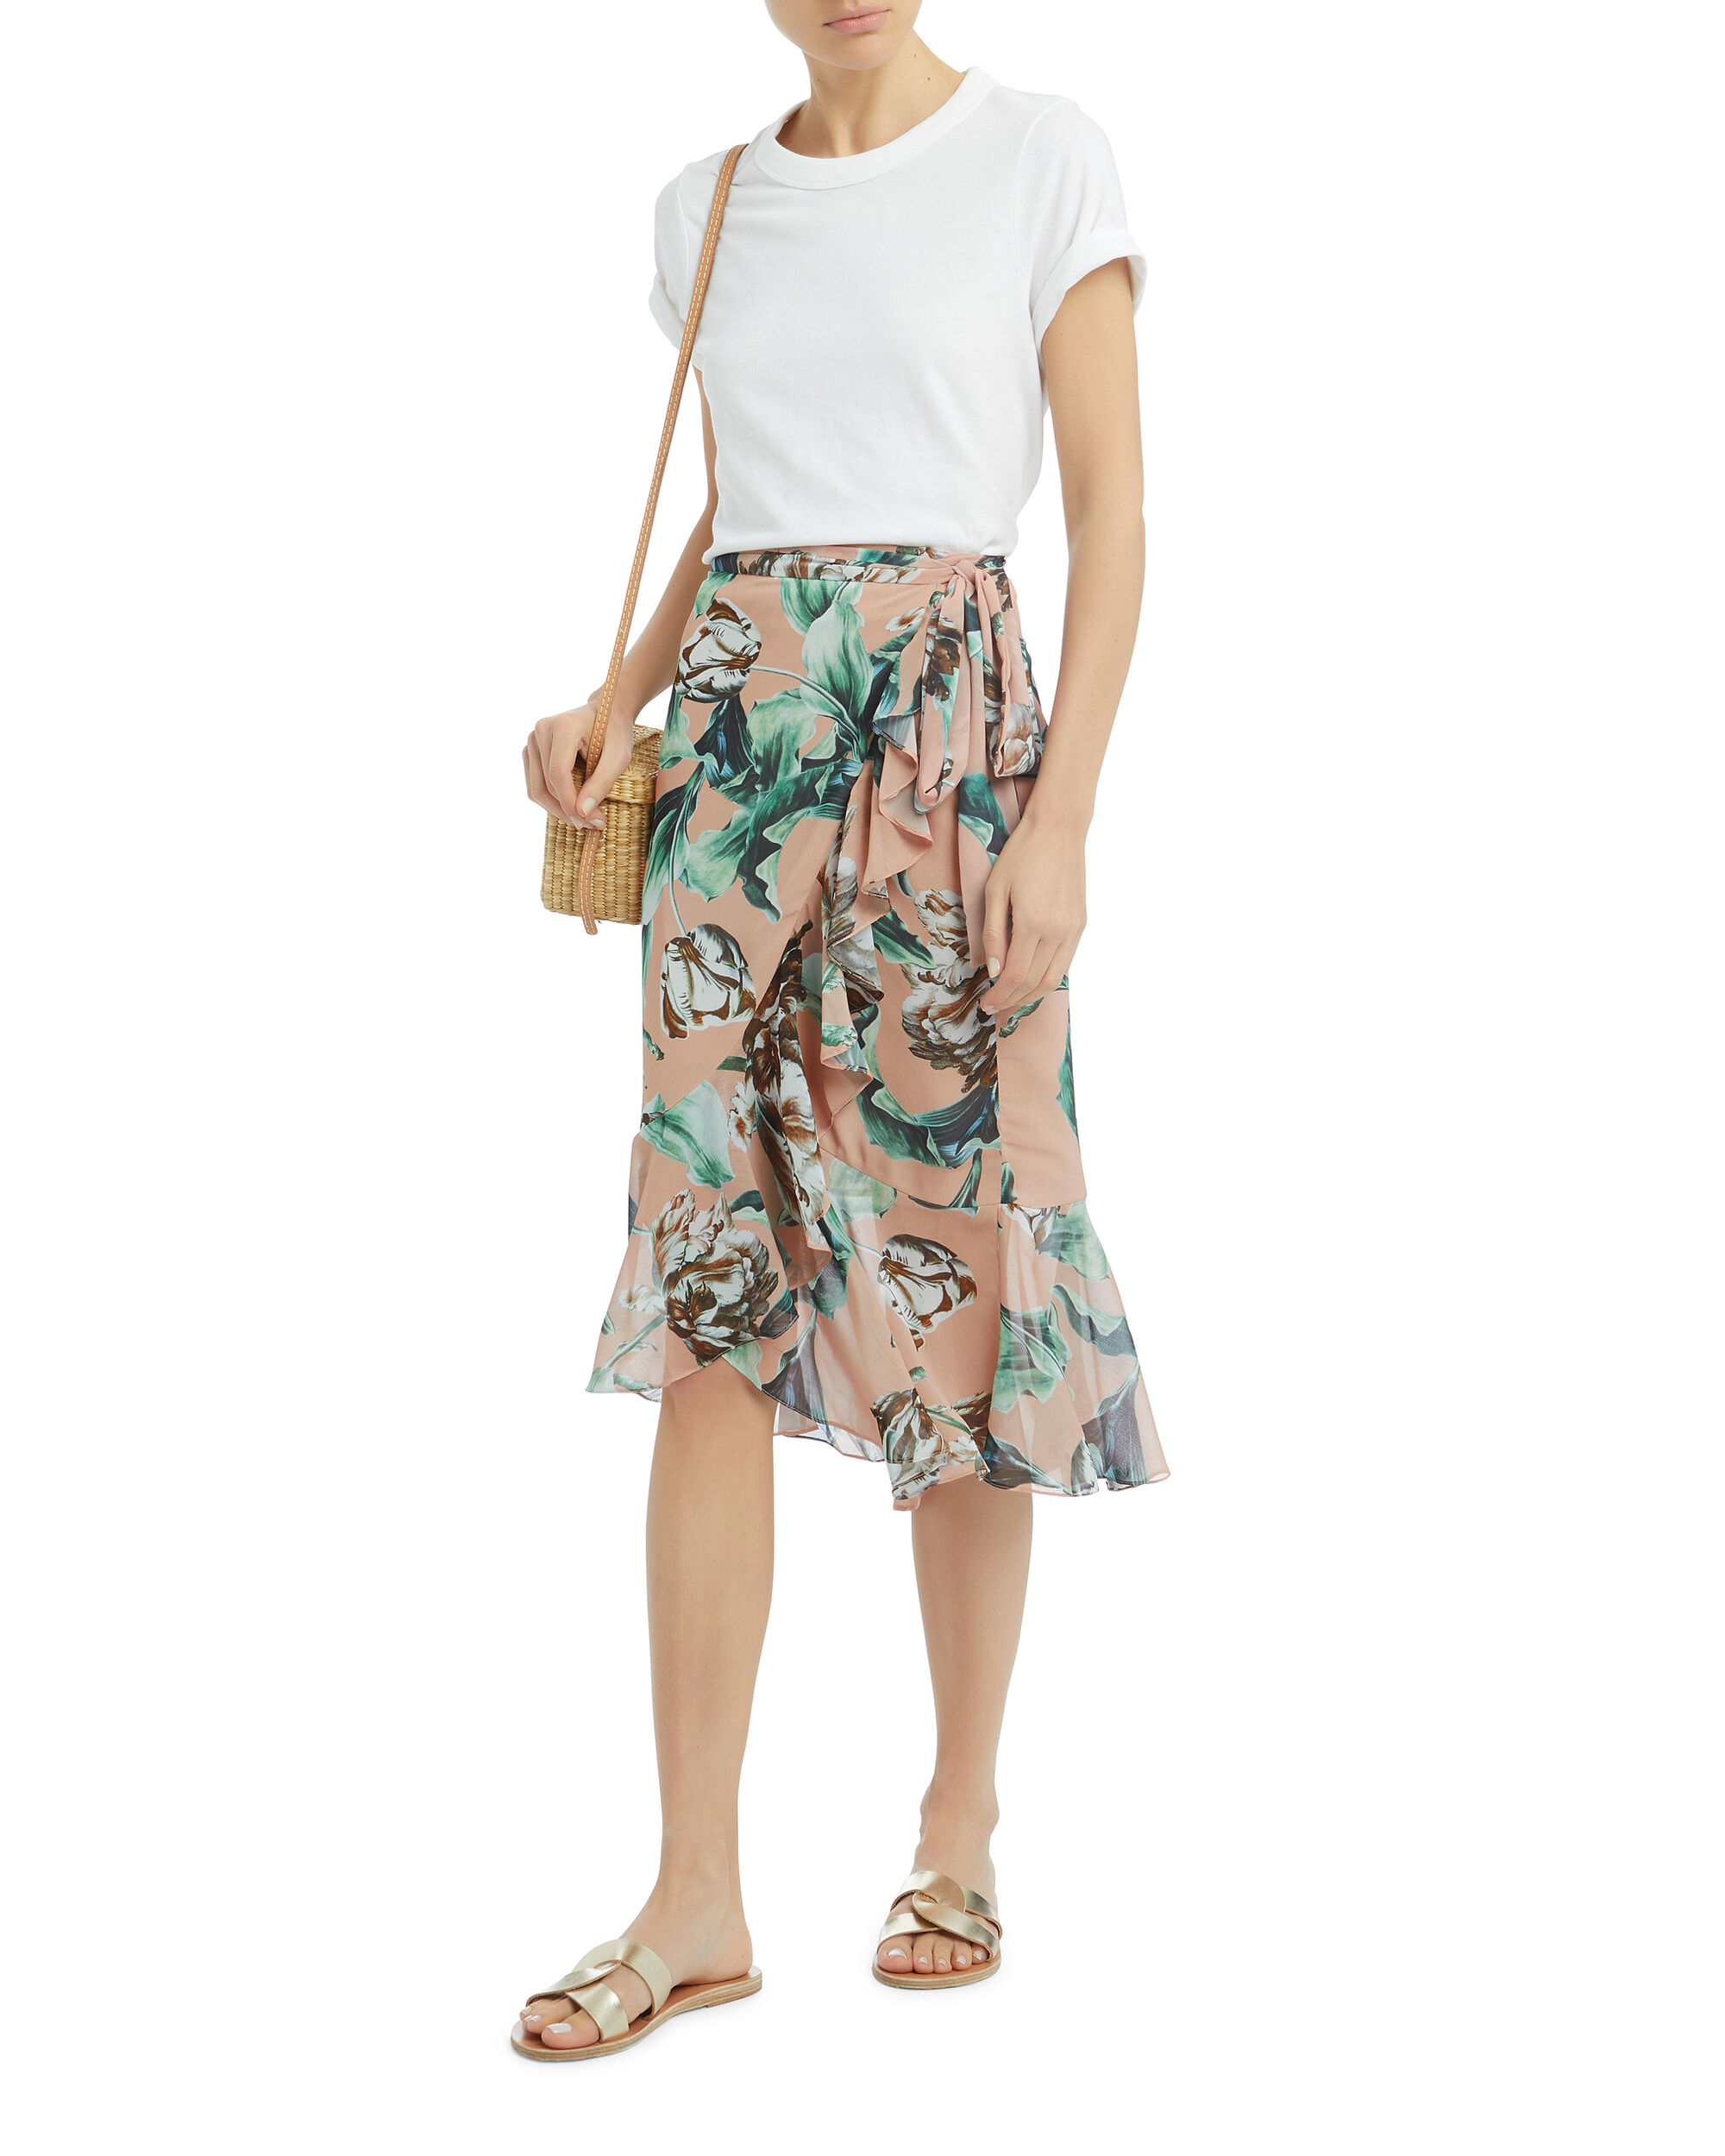 Botanica Wrap Skirt, MULTI, hi-res